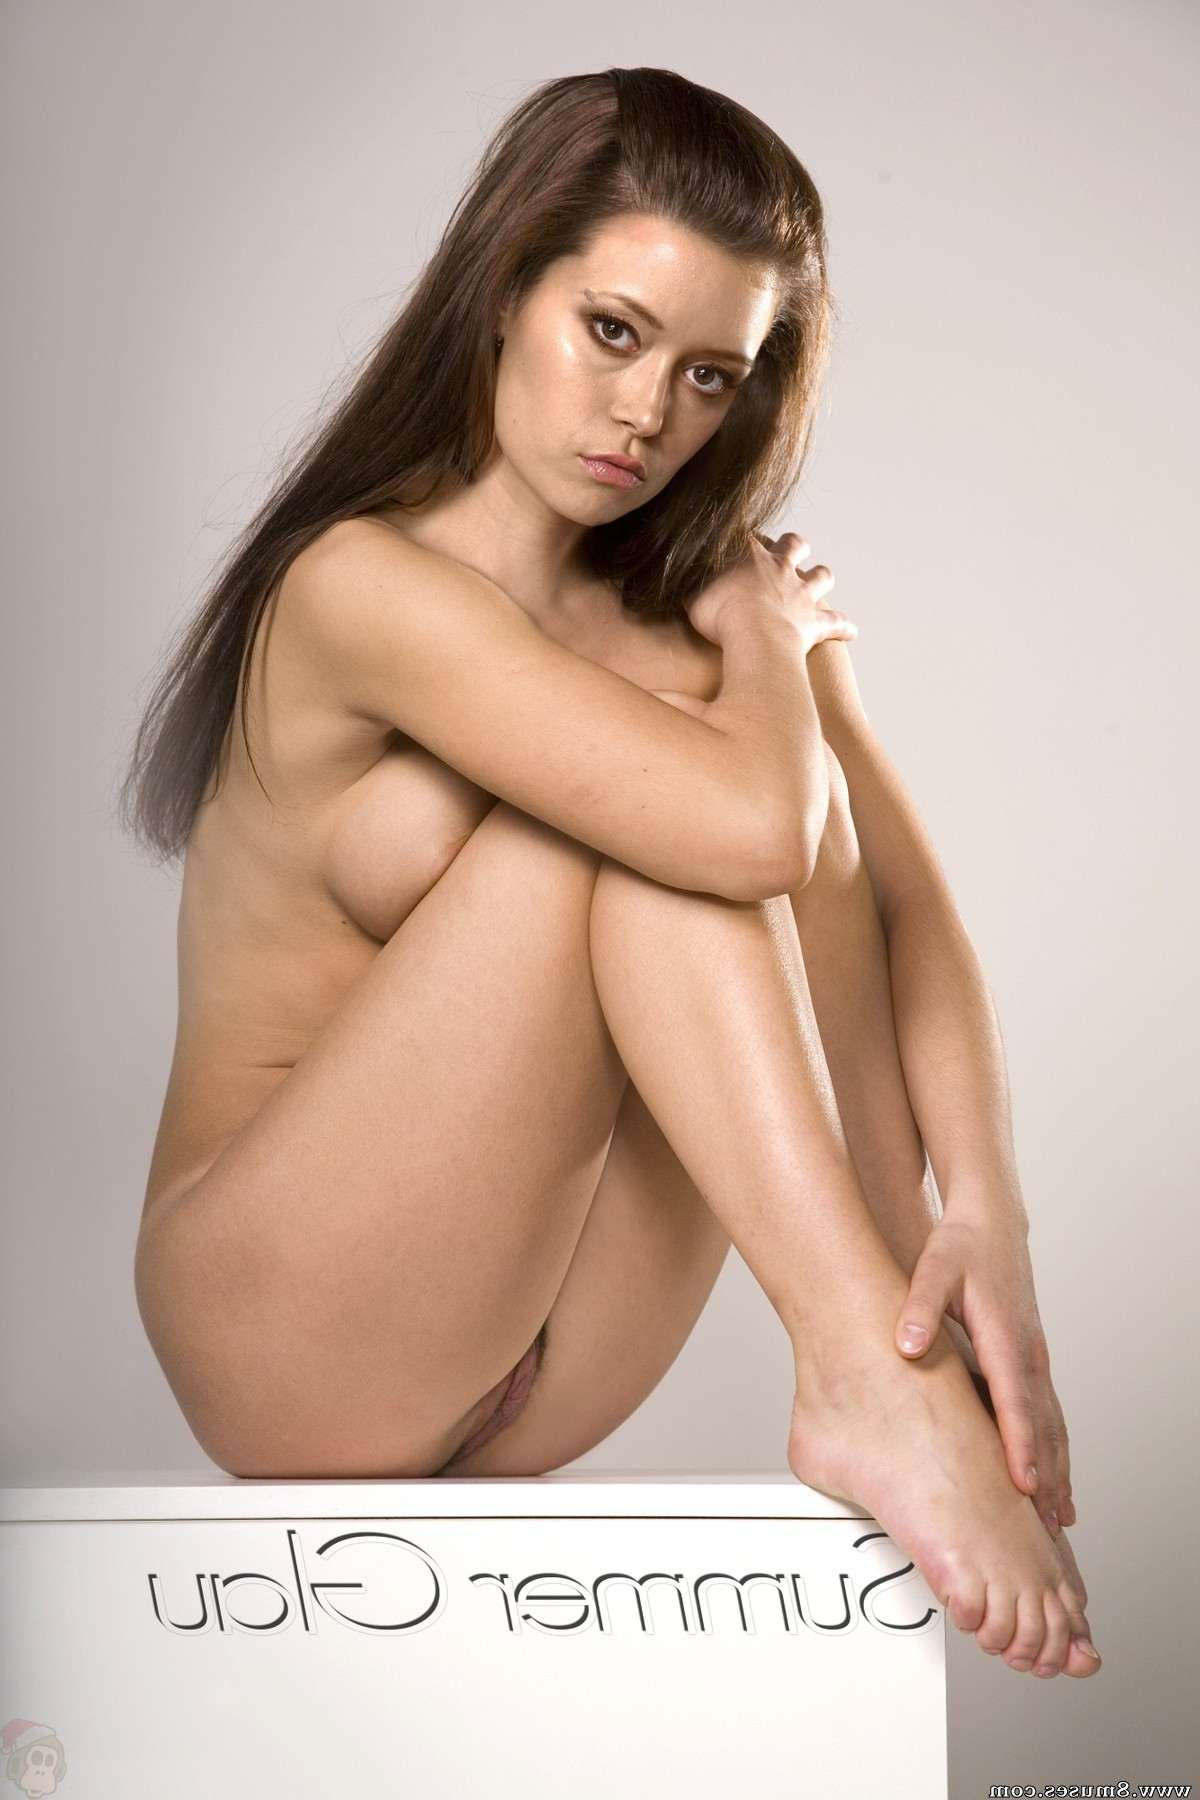 Fake-Celebrities-Sex-Pictures/Summer-Glau Summer_Glau__8muses_-_Sex_and_Porn_Comics_52.jpg